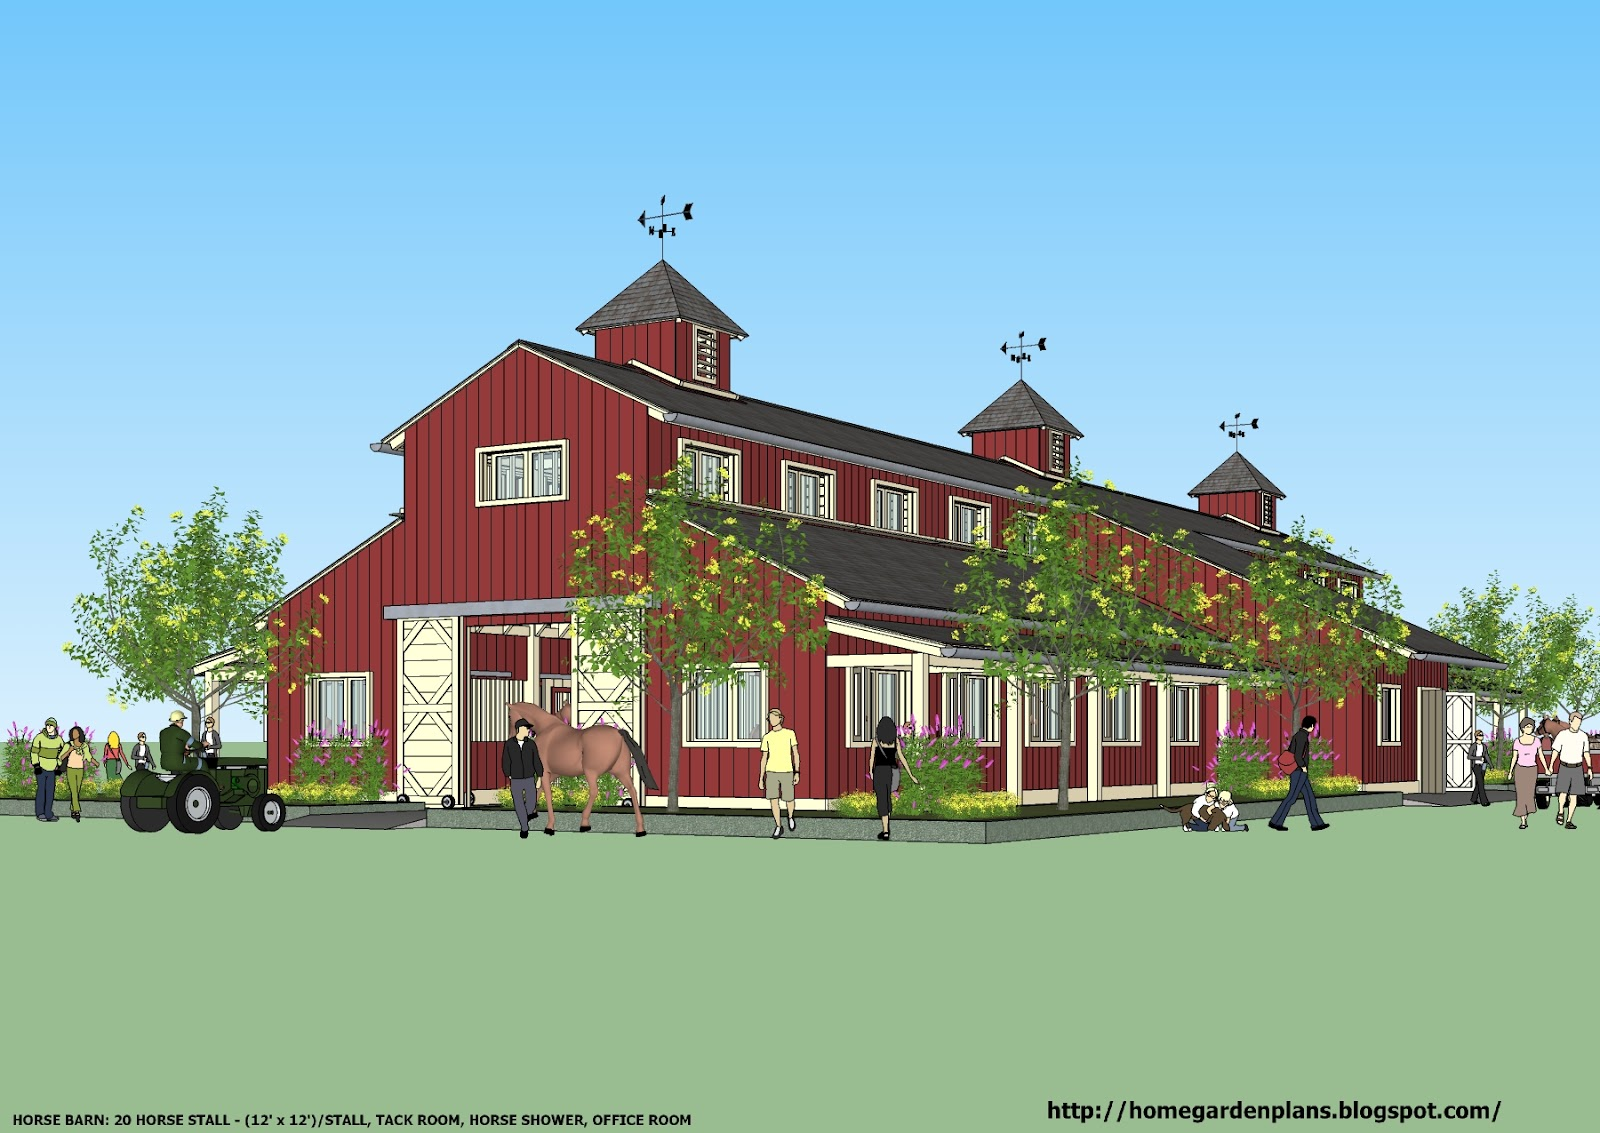 Home garden plans news b20h large horse barn plans for for House horse barn plans